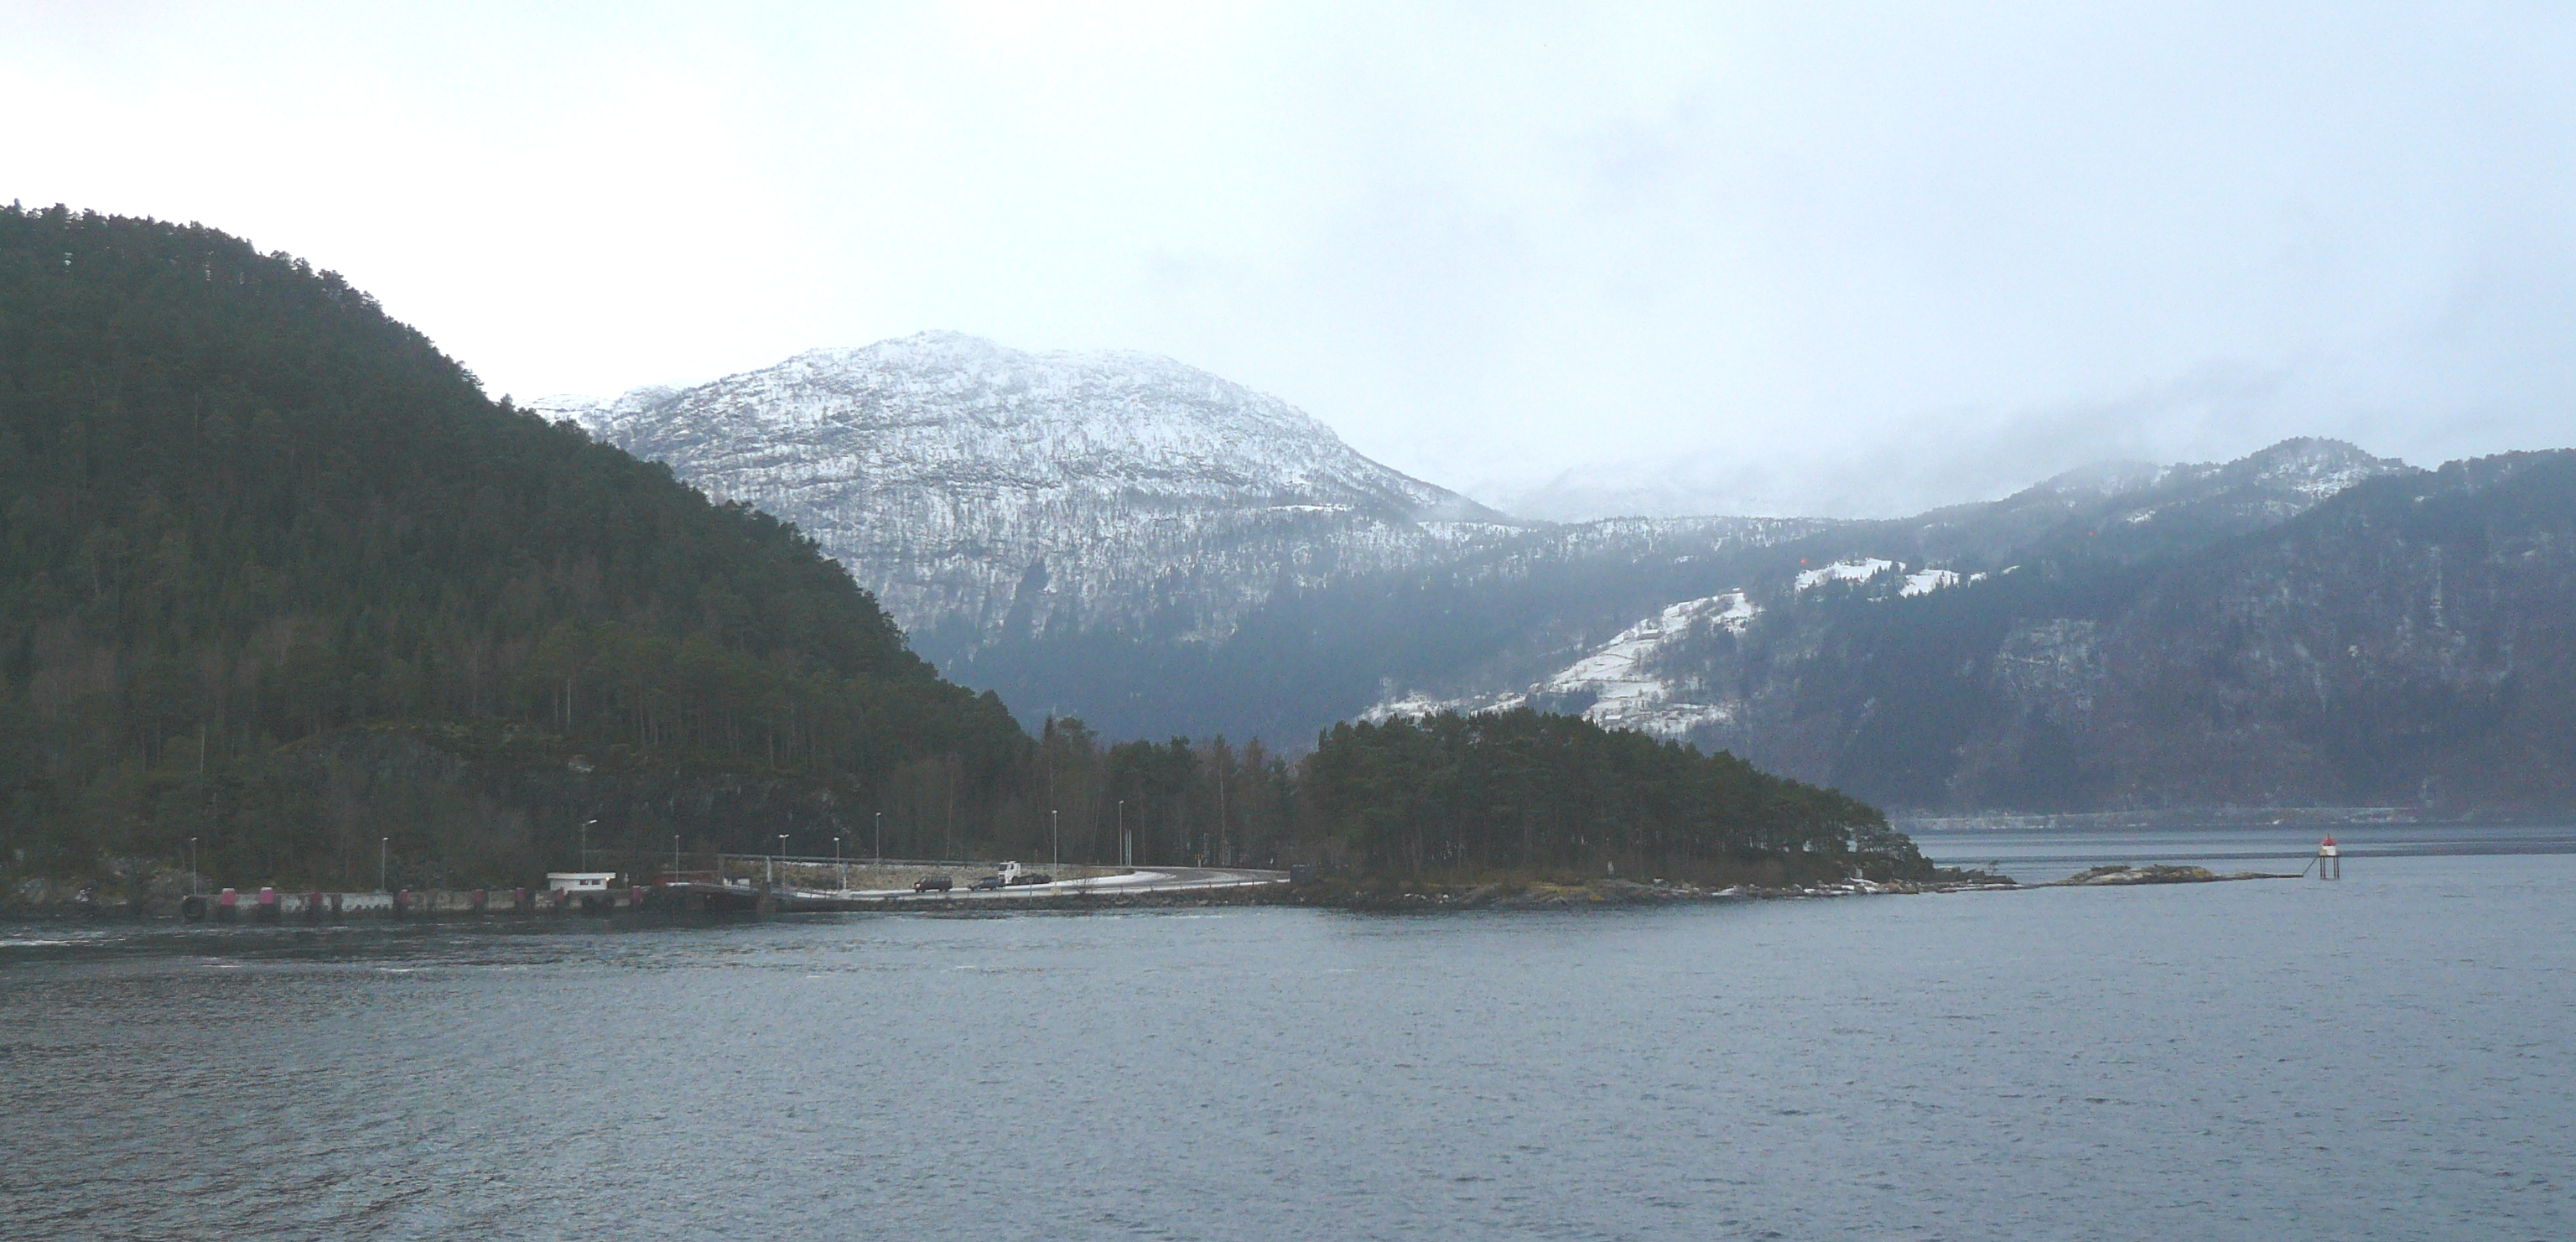 Anda ferry slip, Gloppen, Norway. To the right...